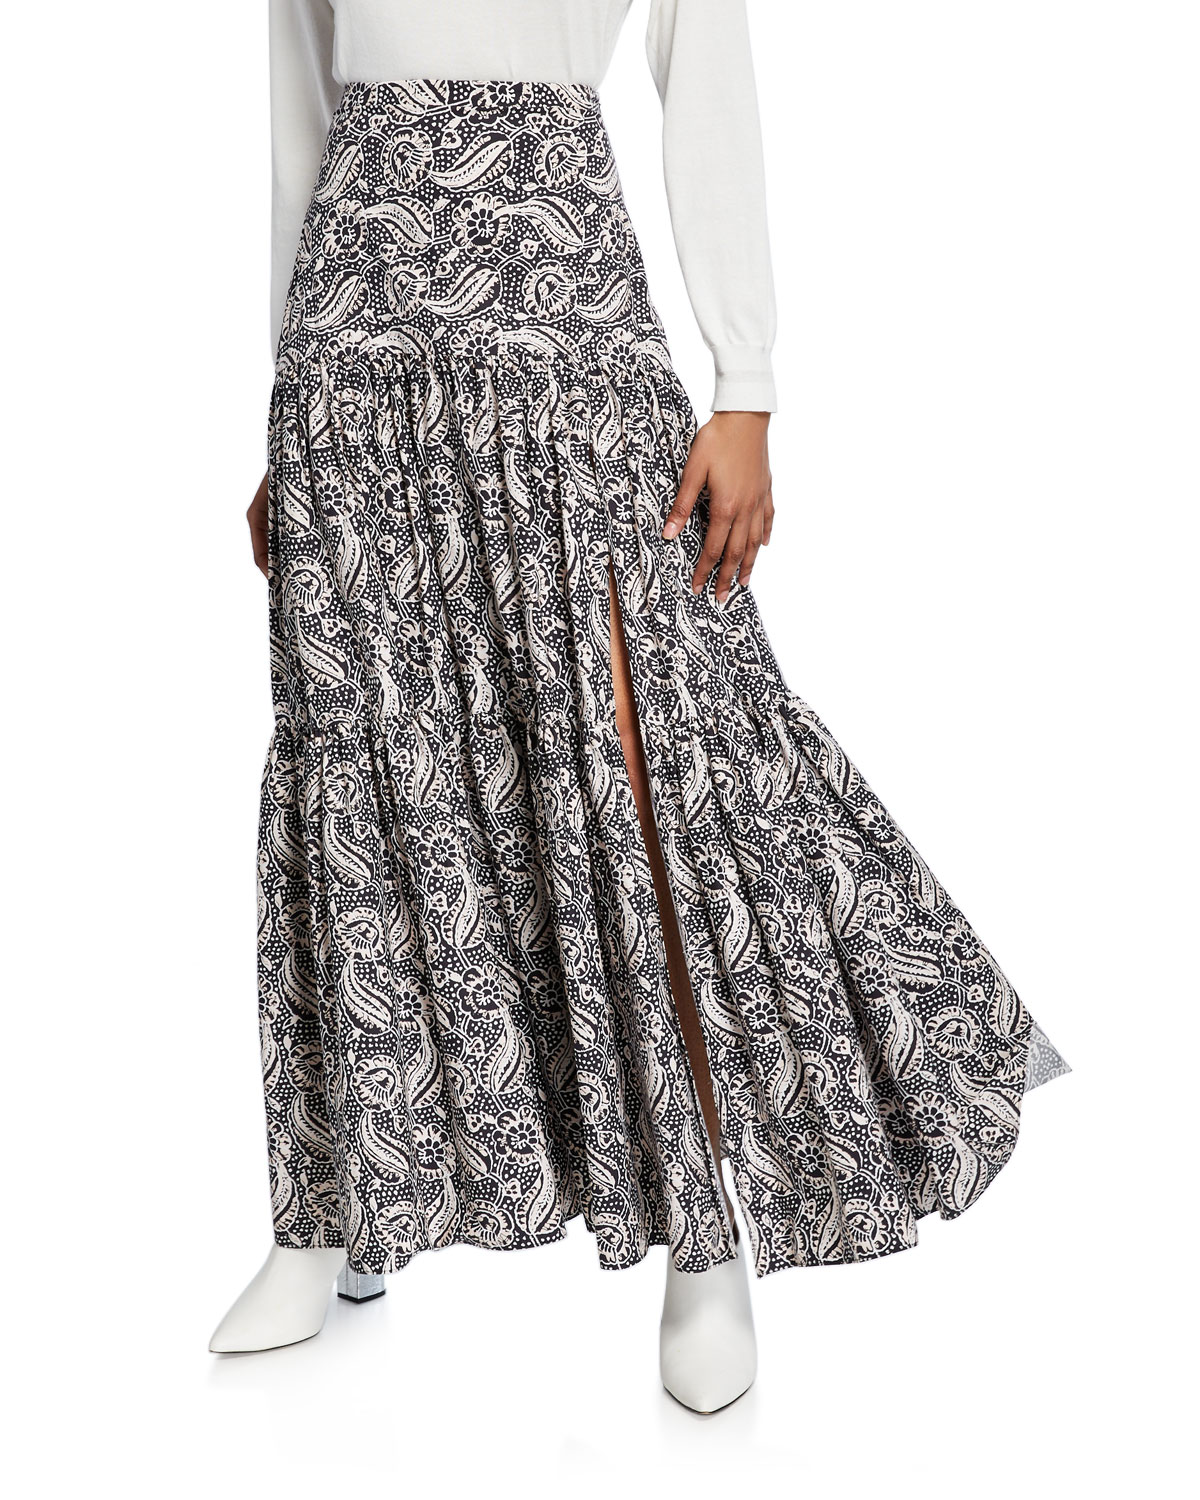 Veronica Beard Skirts SERENCE PRINTED SLIT MAXI SKIRT